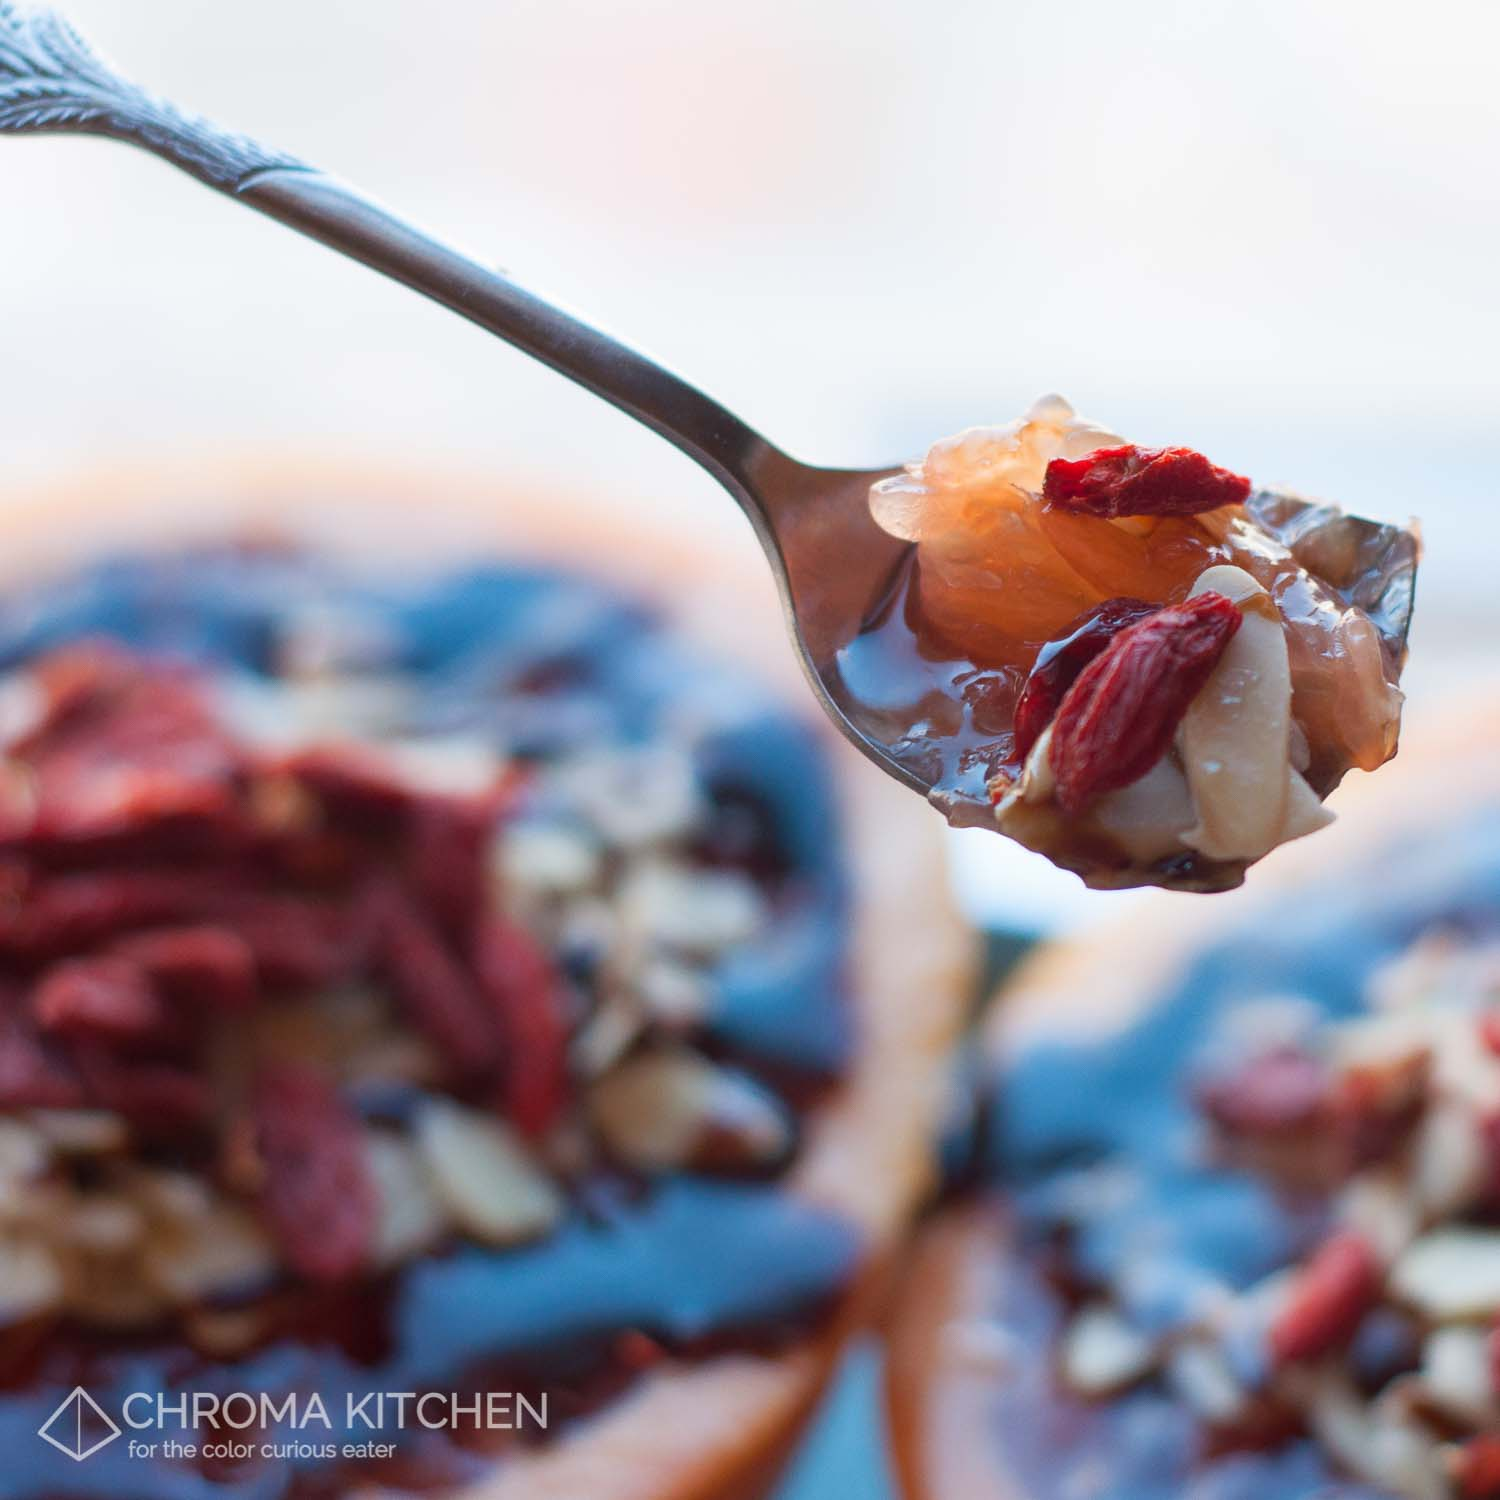 Grapefruit-gogi-berries-almonds-balsamic